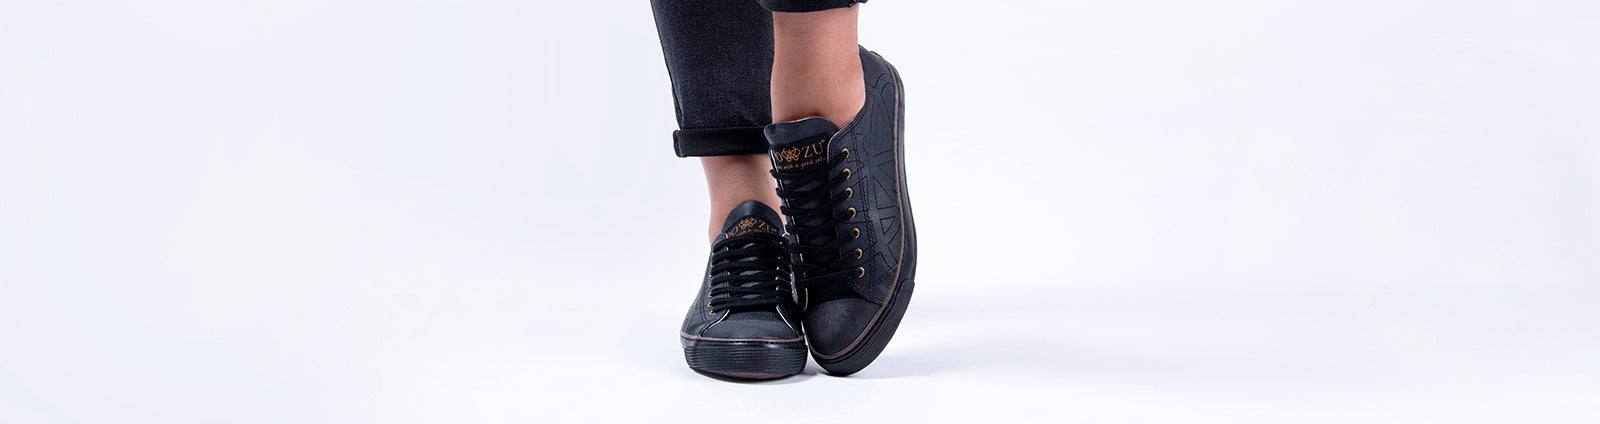 po-zu sustainable ethical vegan shoes